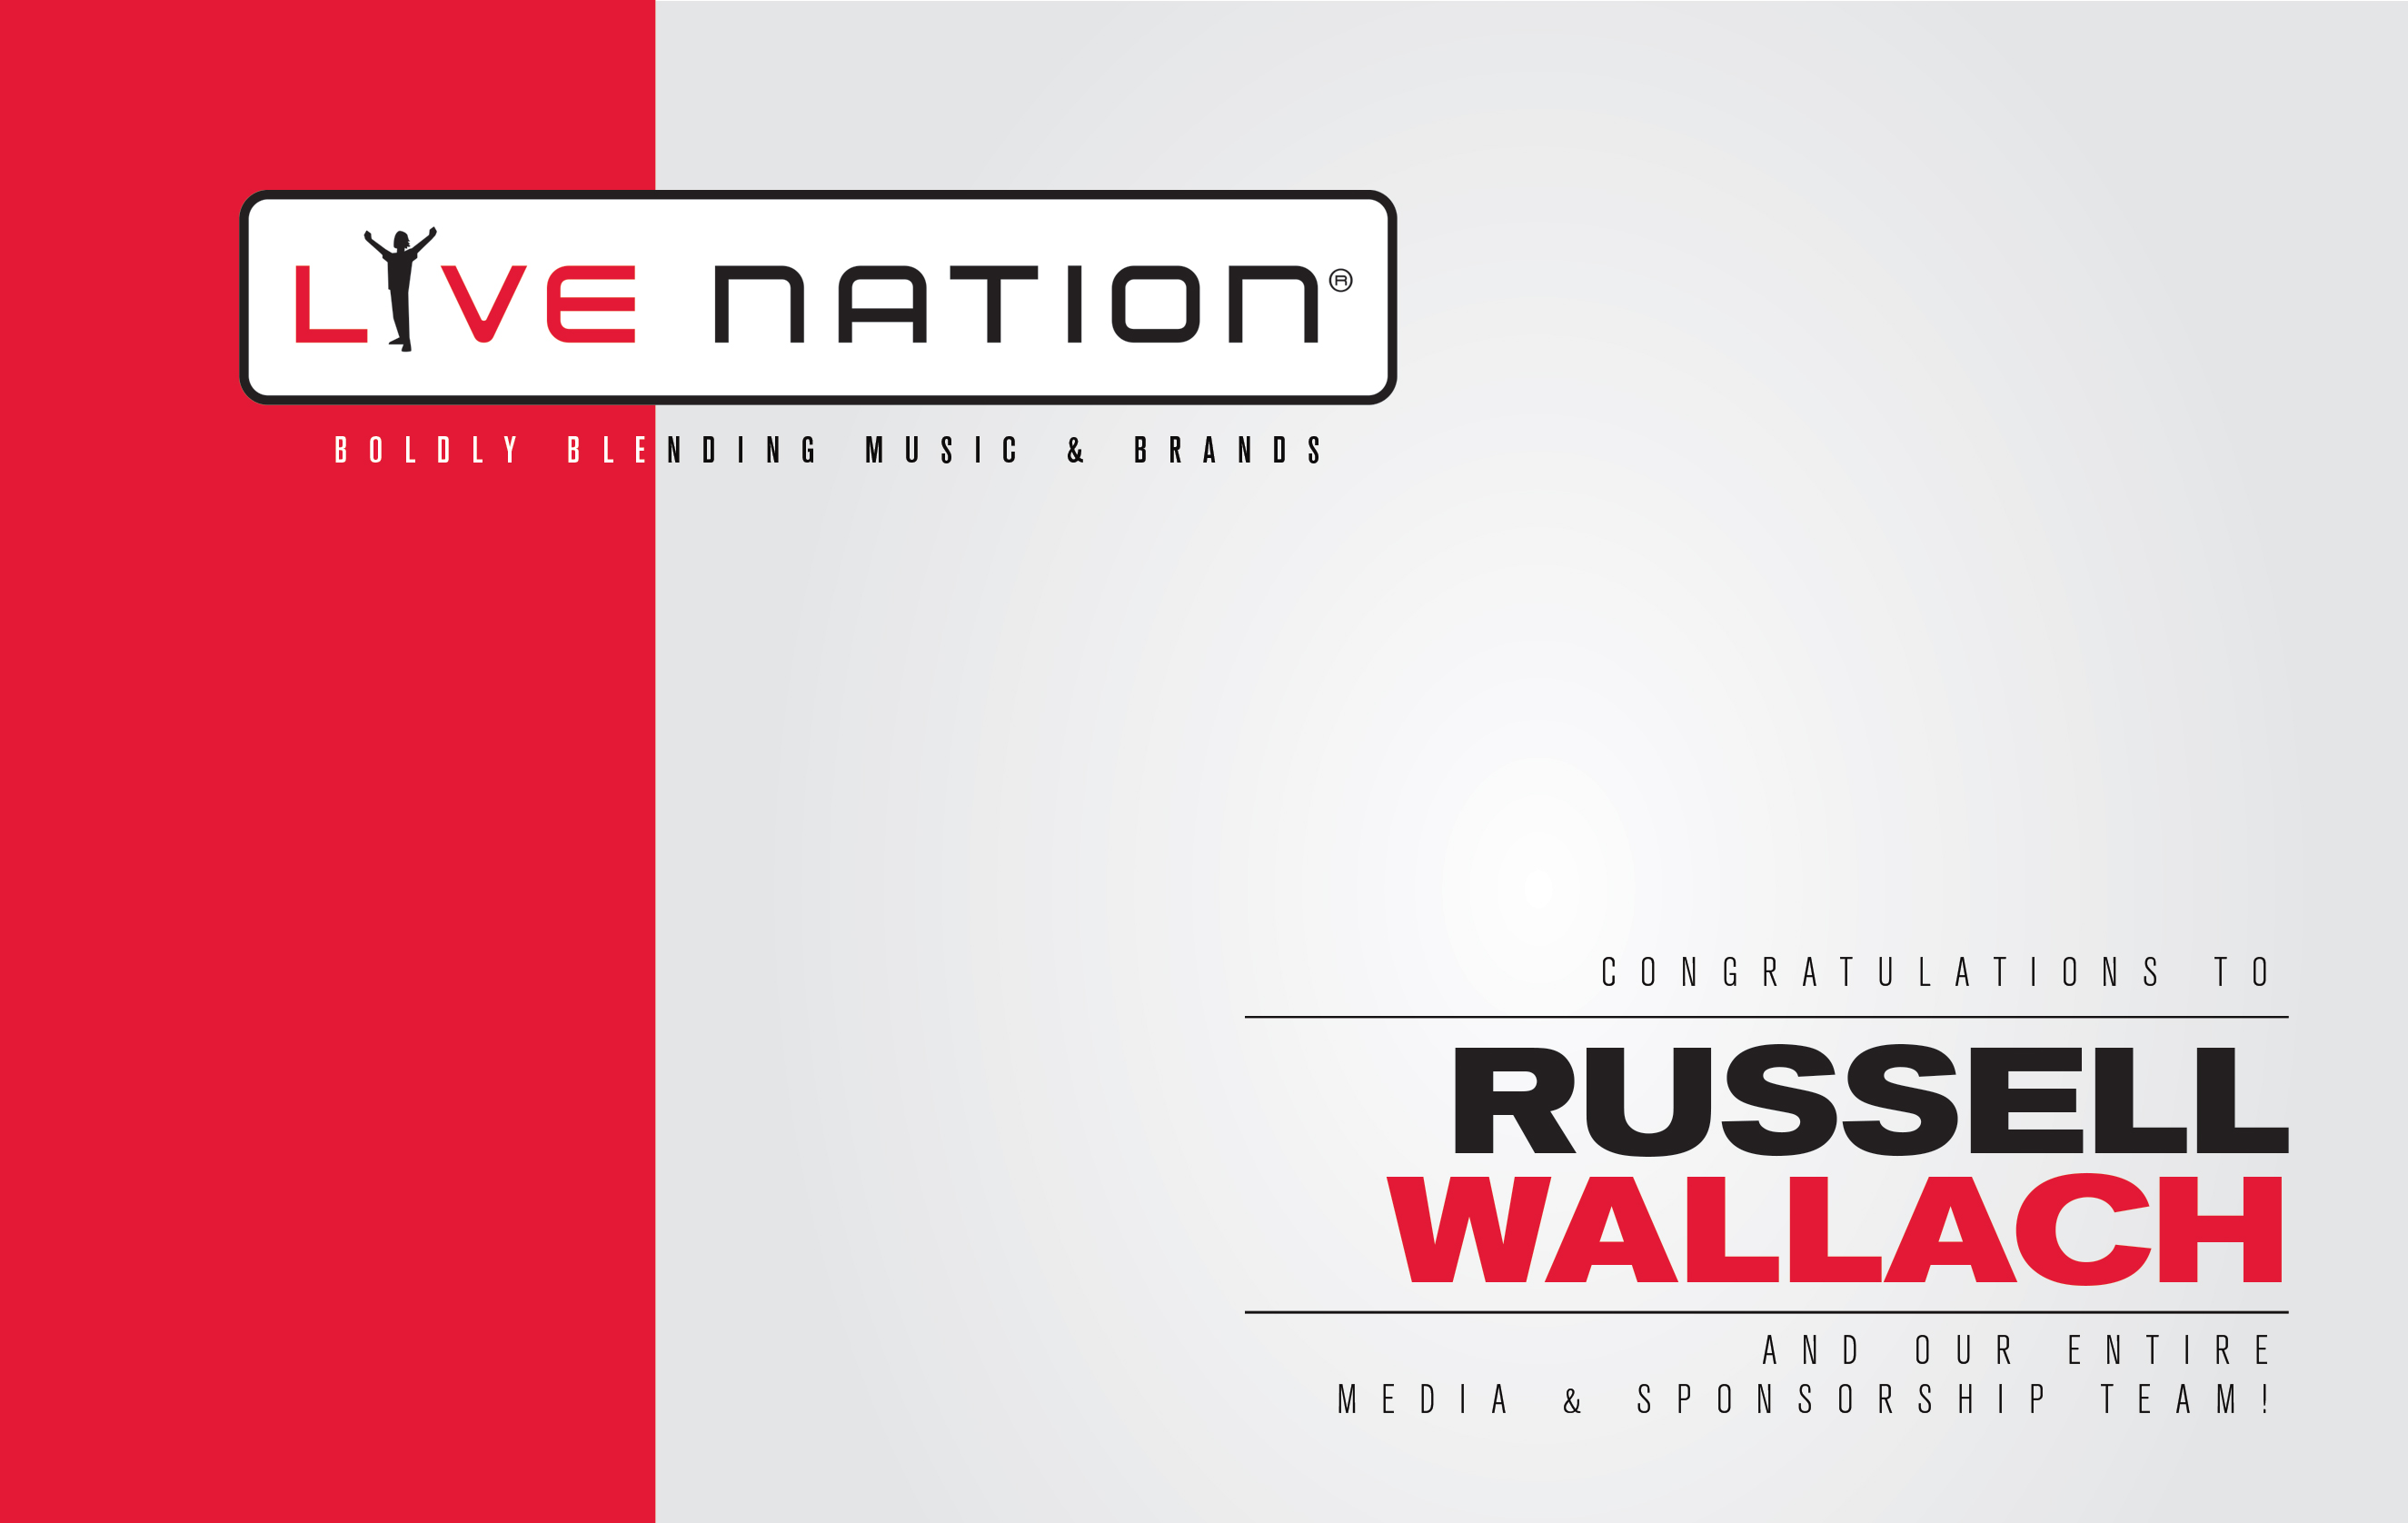 LIVE NATION RUSSELL WALLACH